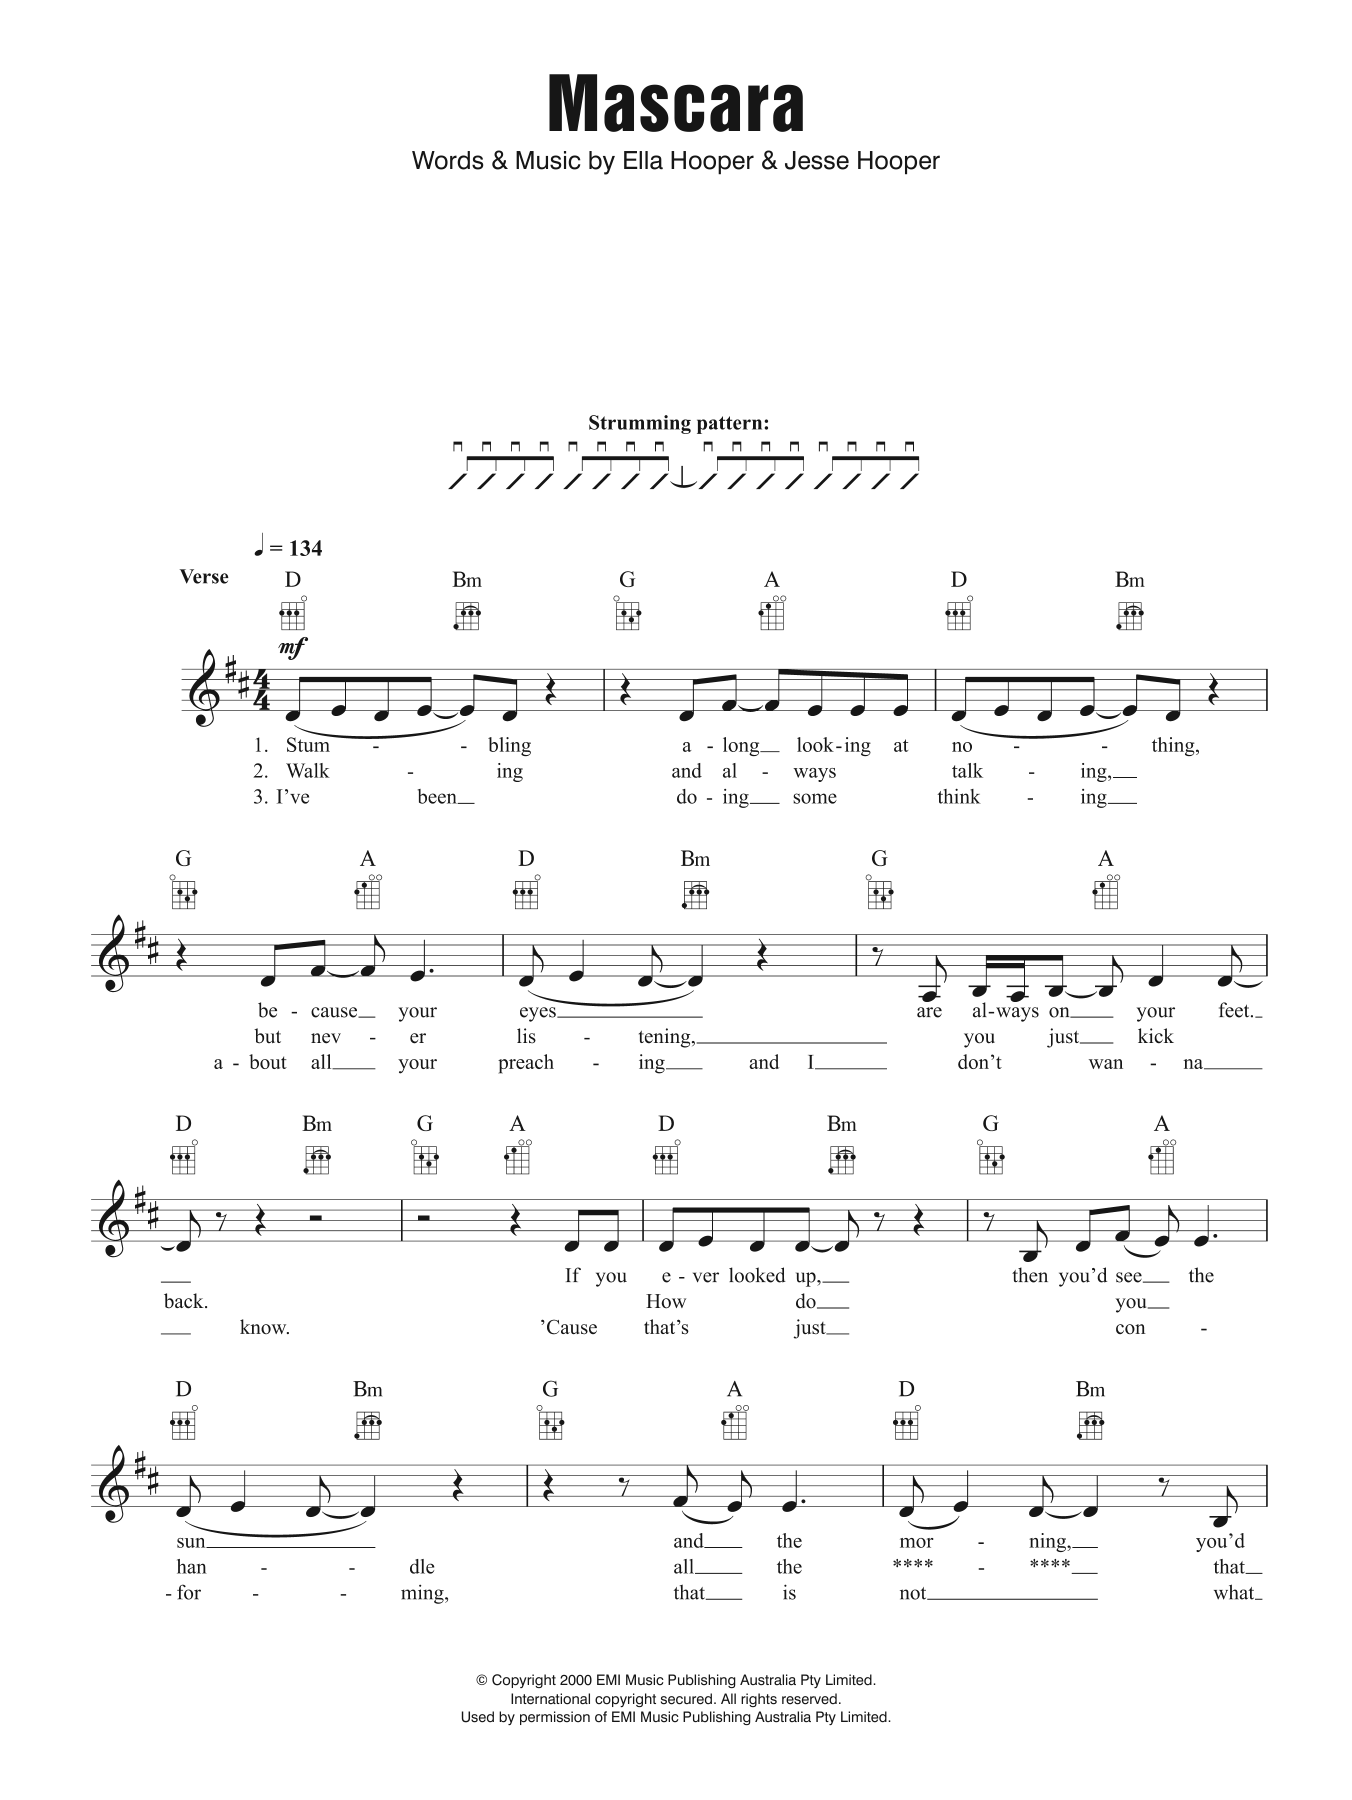 Mascara Sheet Music